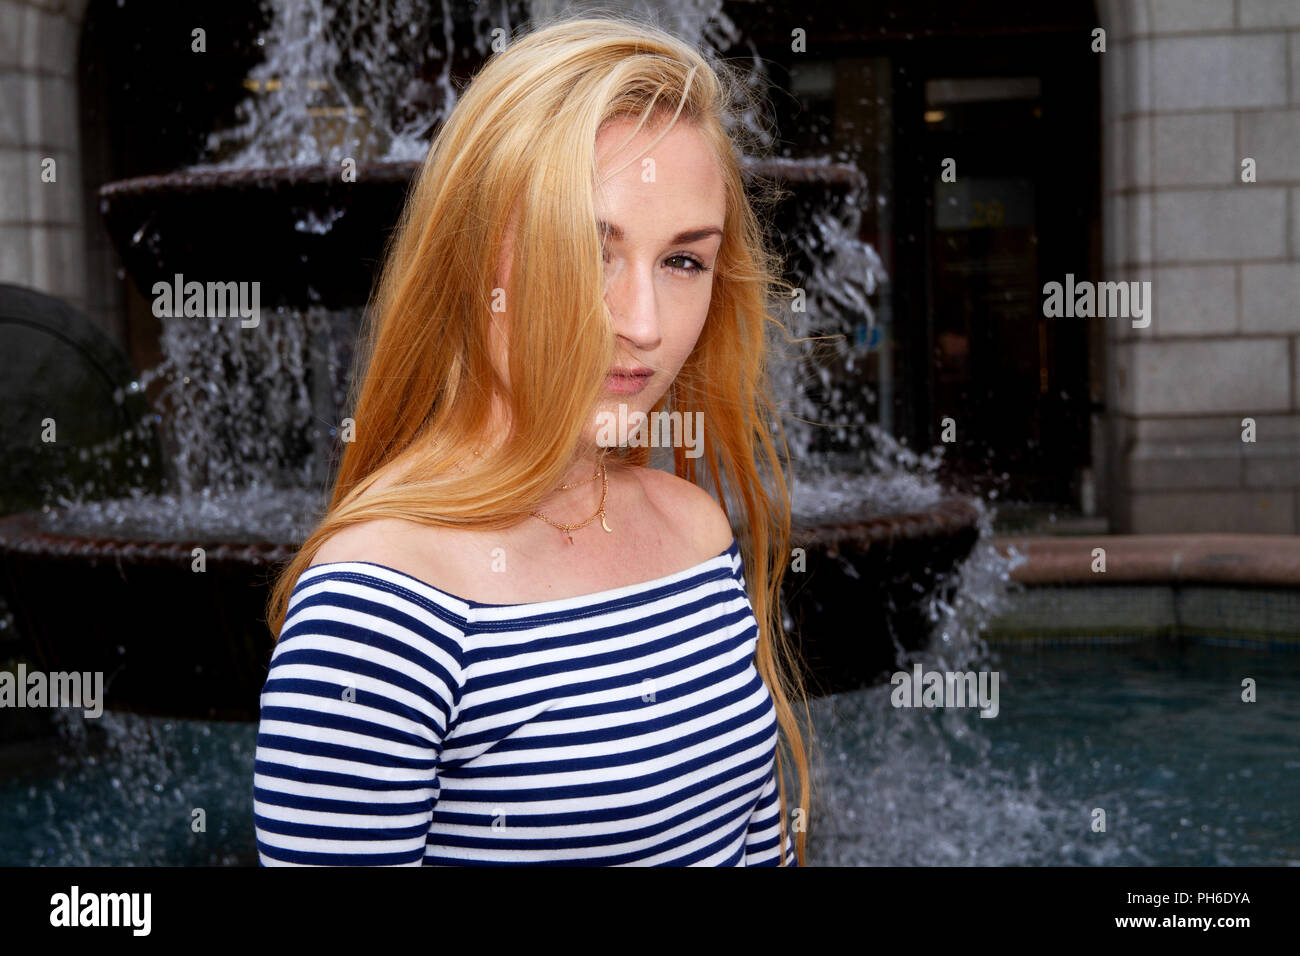 Close up of a  young woman with long blond hair sitting beside a fountain on a breezy day at the City Square in Dundee, UK - Stock Image